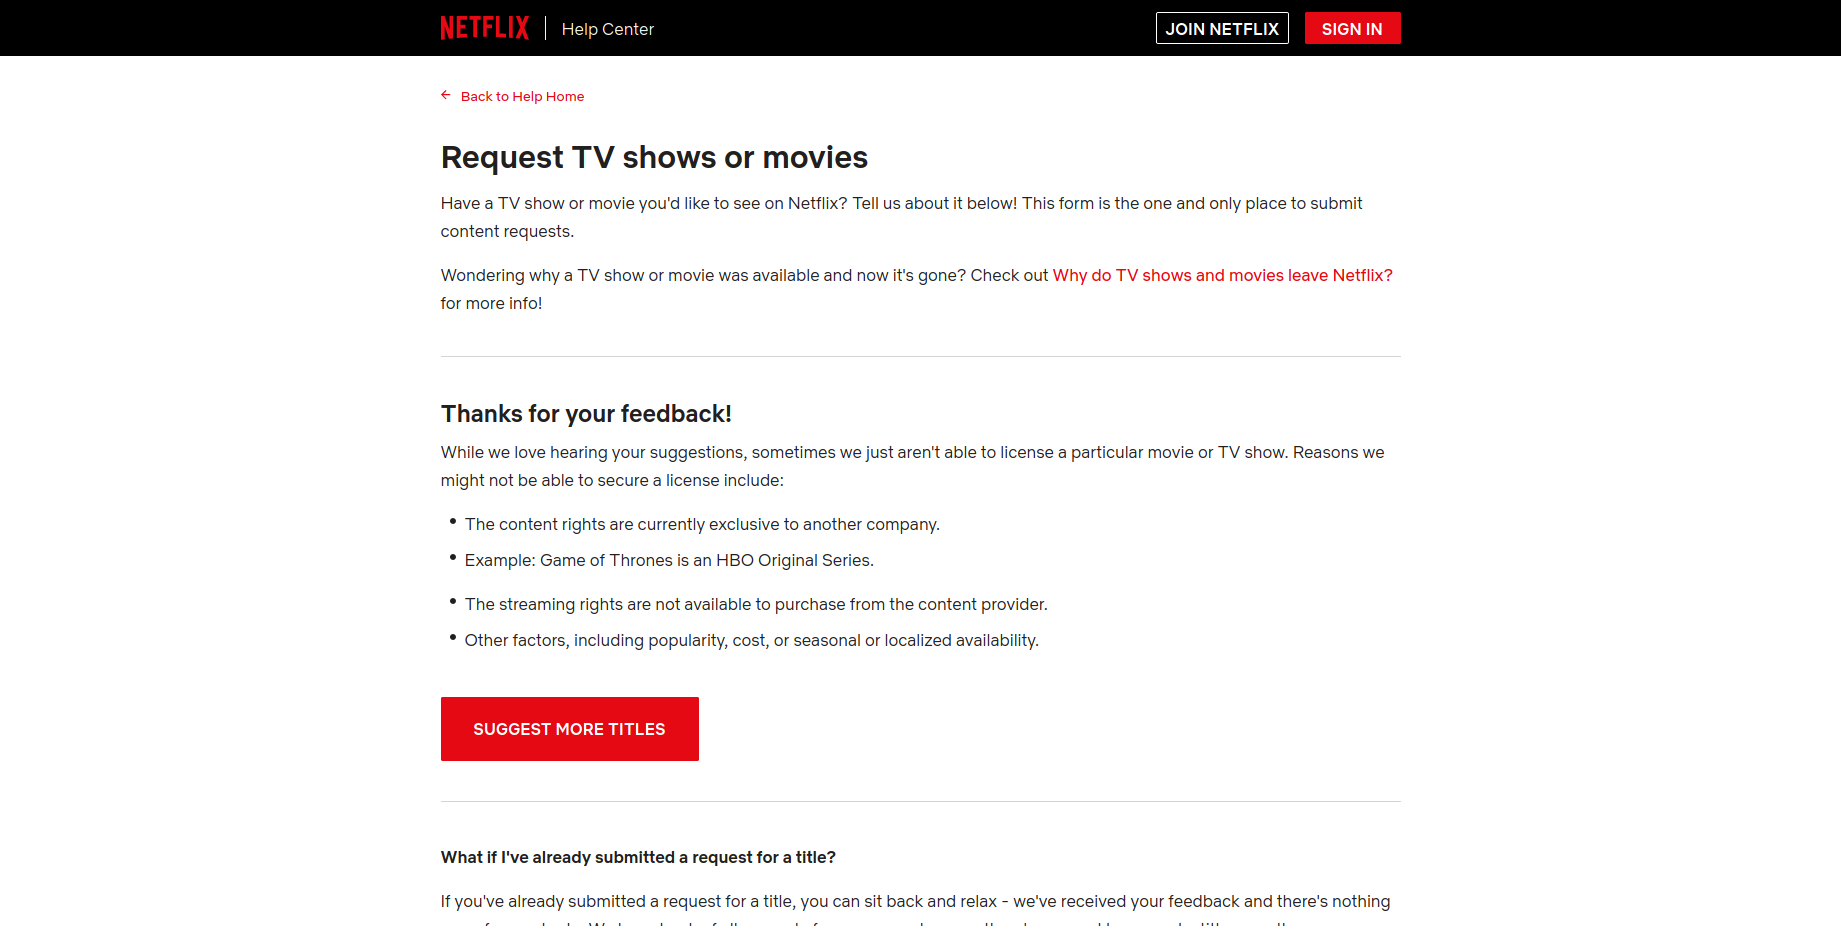 Netflix request Thank you page